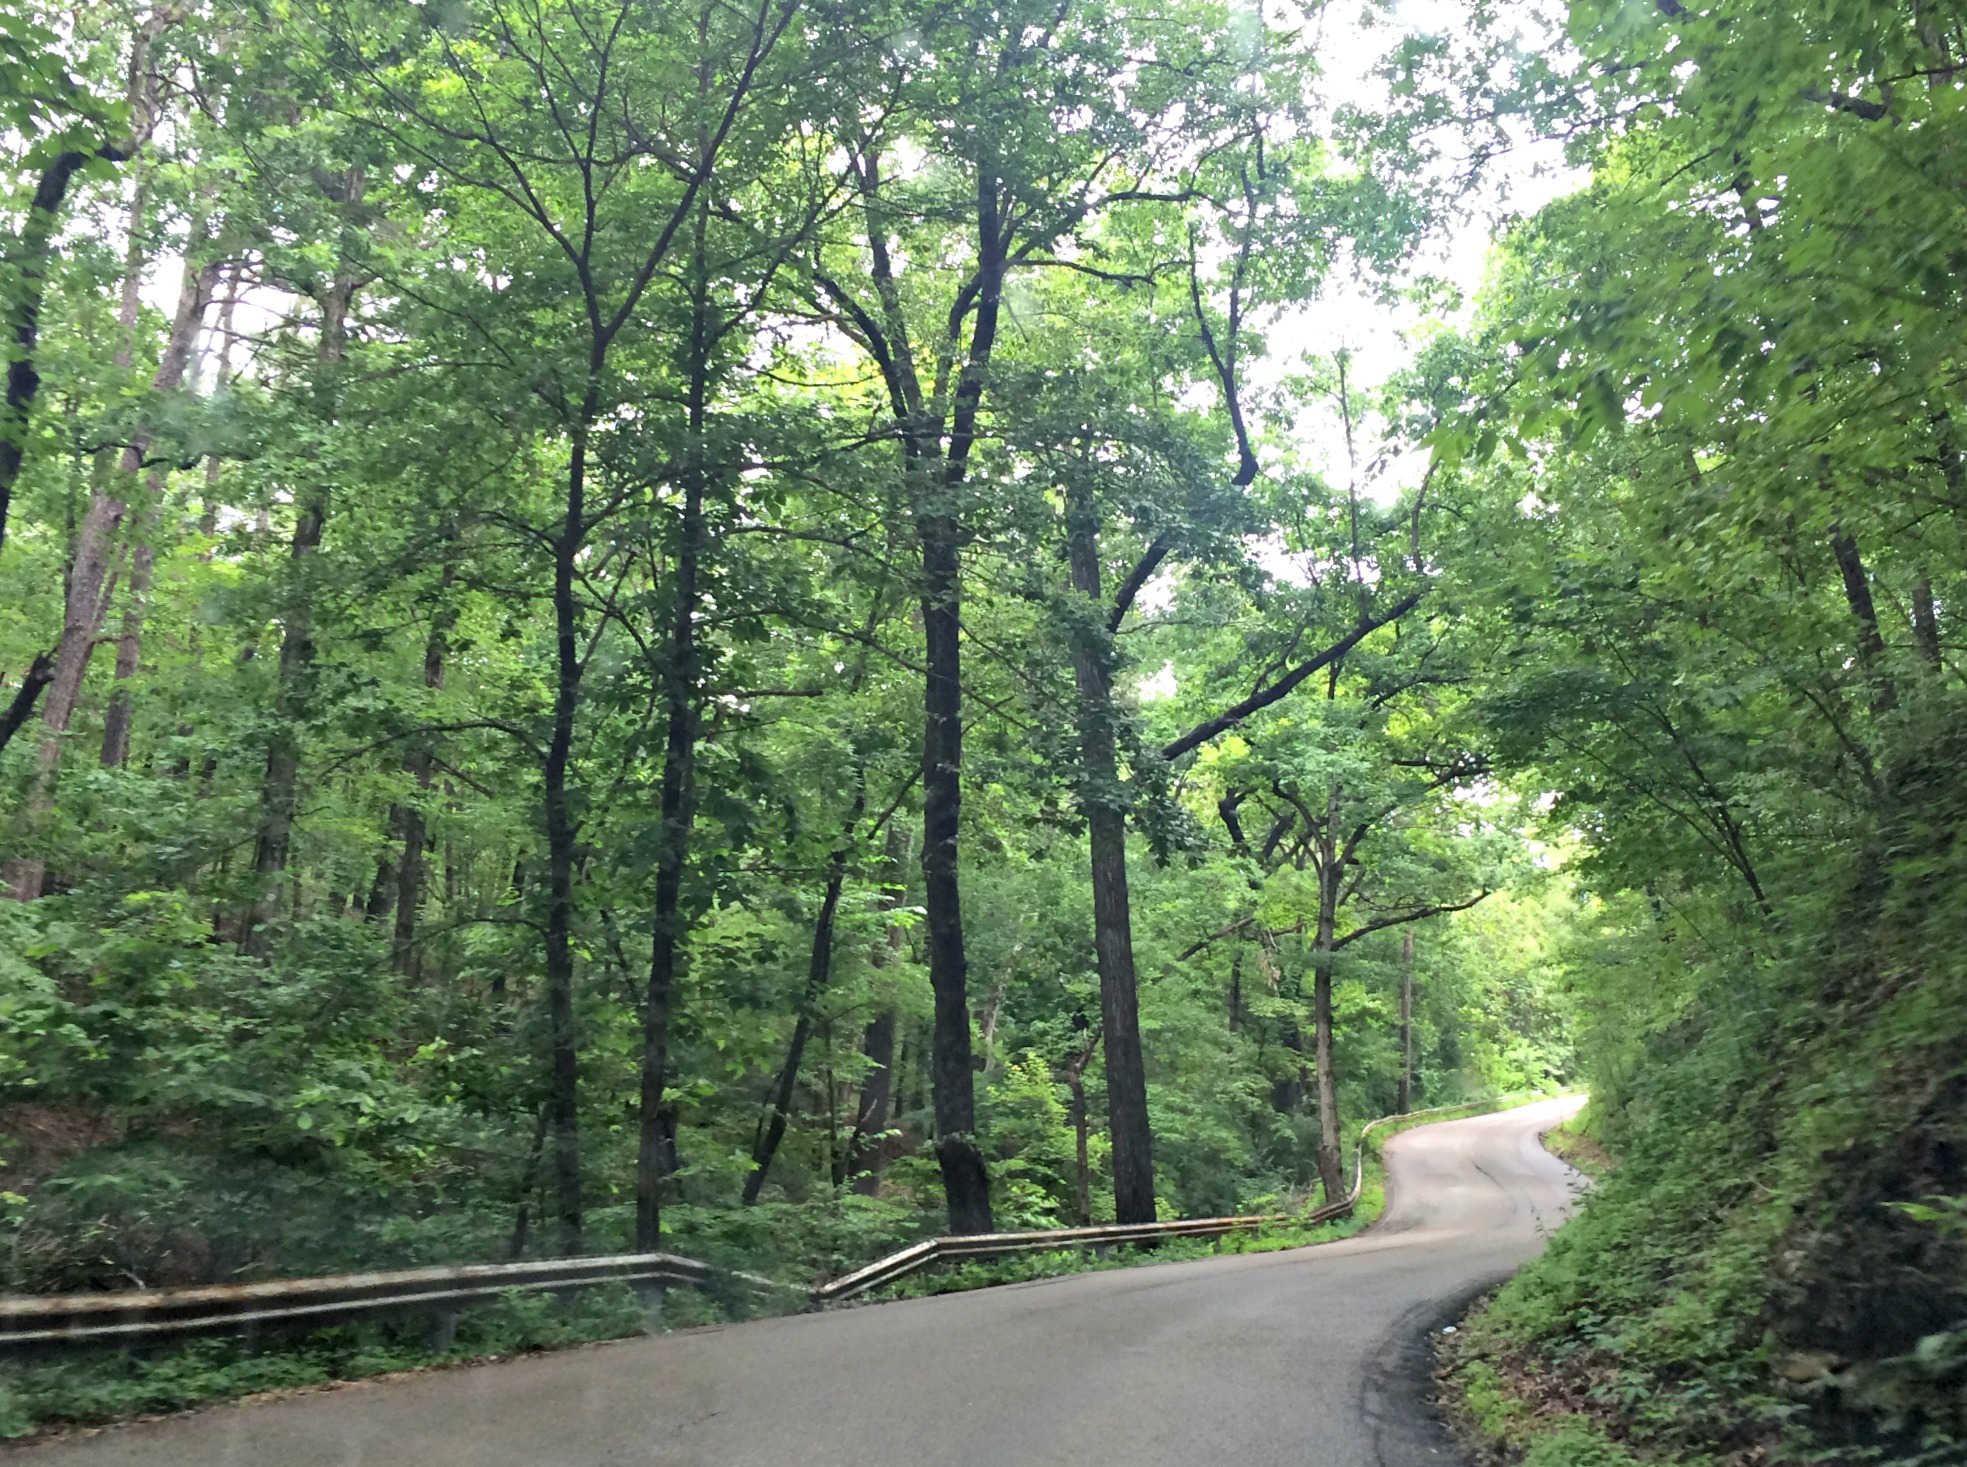 driving through Eureka Springs, AR